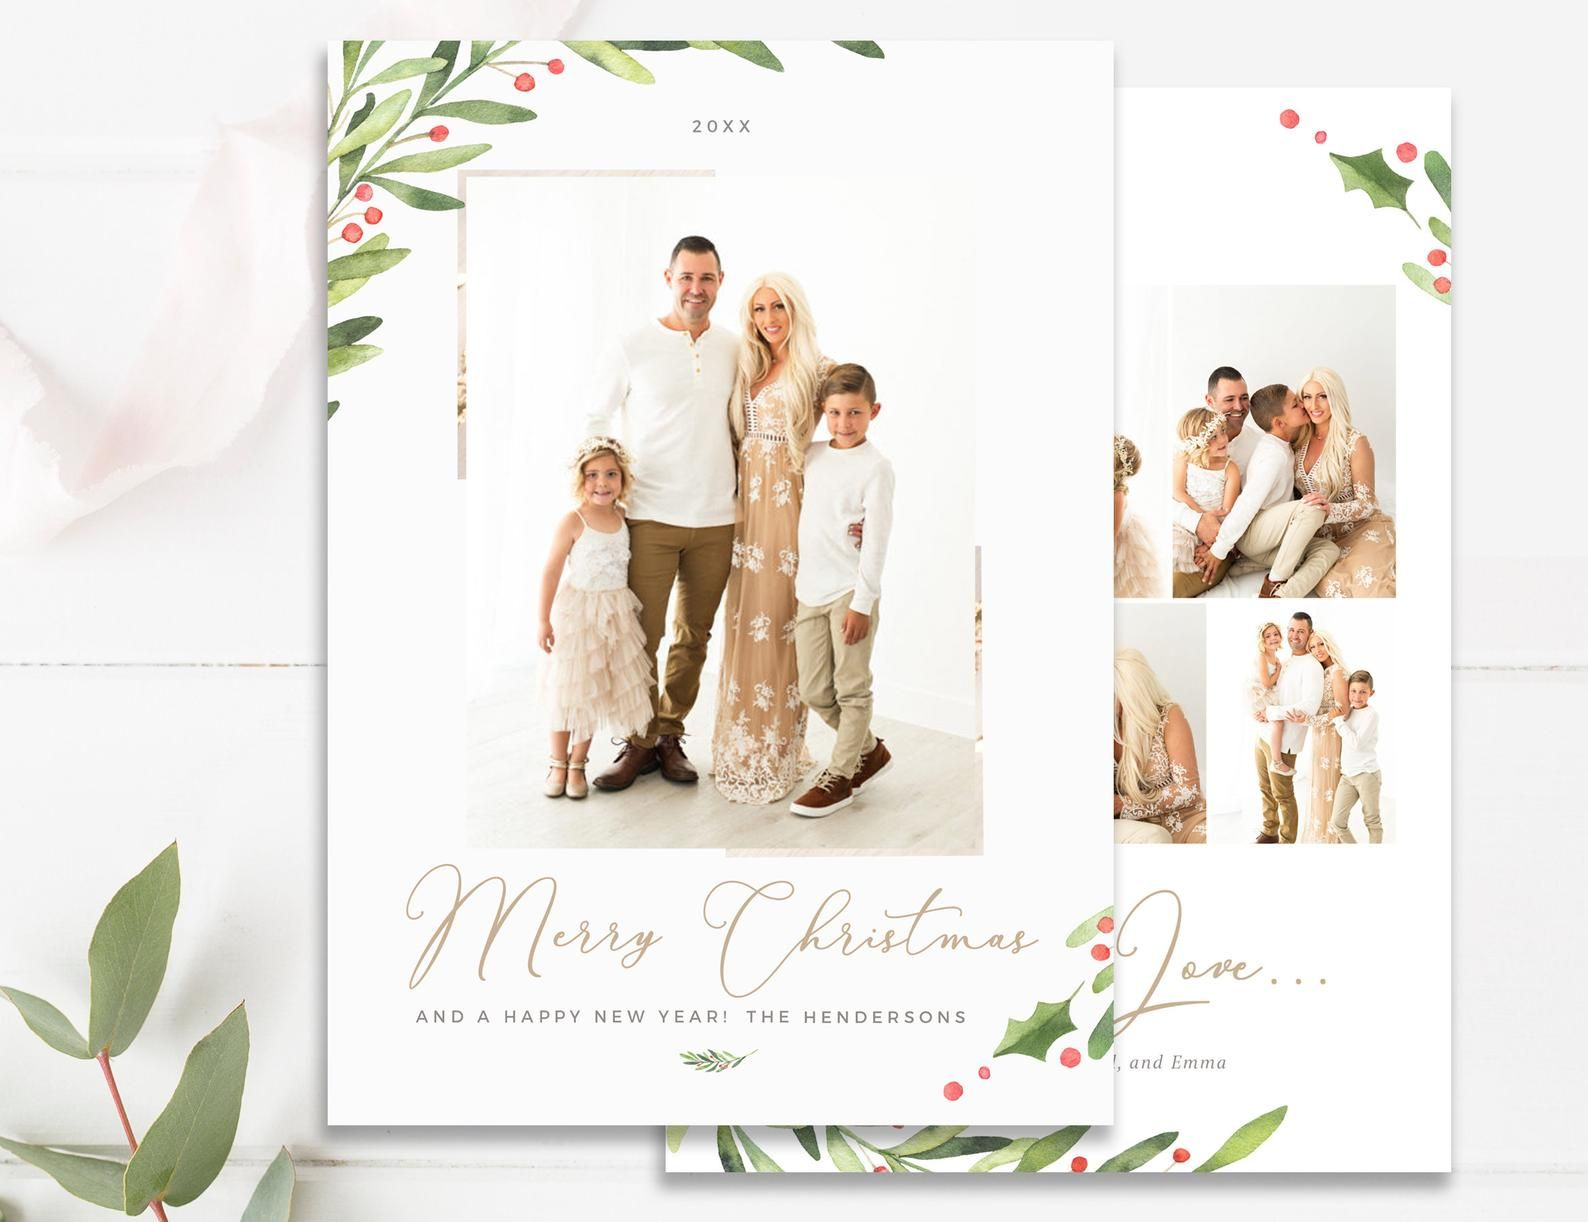 Greenery Christmas Photo Card Template Merry Christmas Card Etsy Photo Card Template Christmas Photo Card Template Christmas Card Photoshop